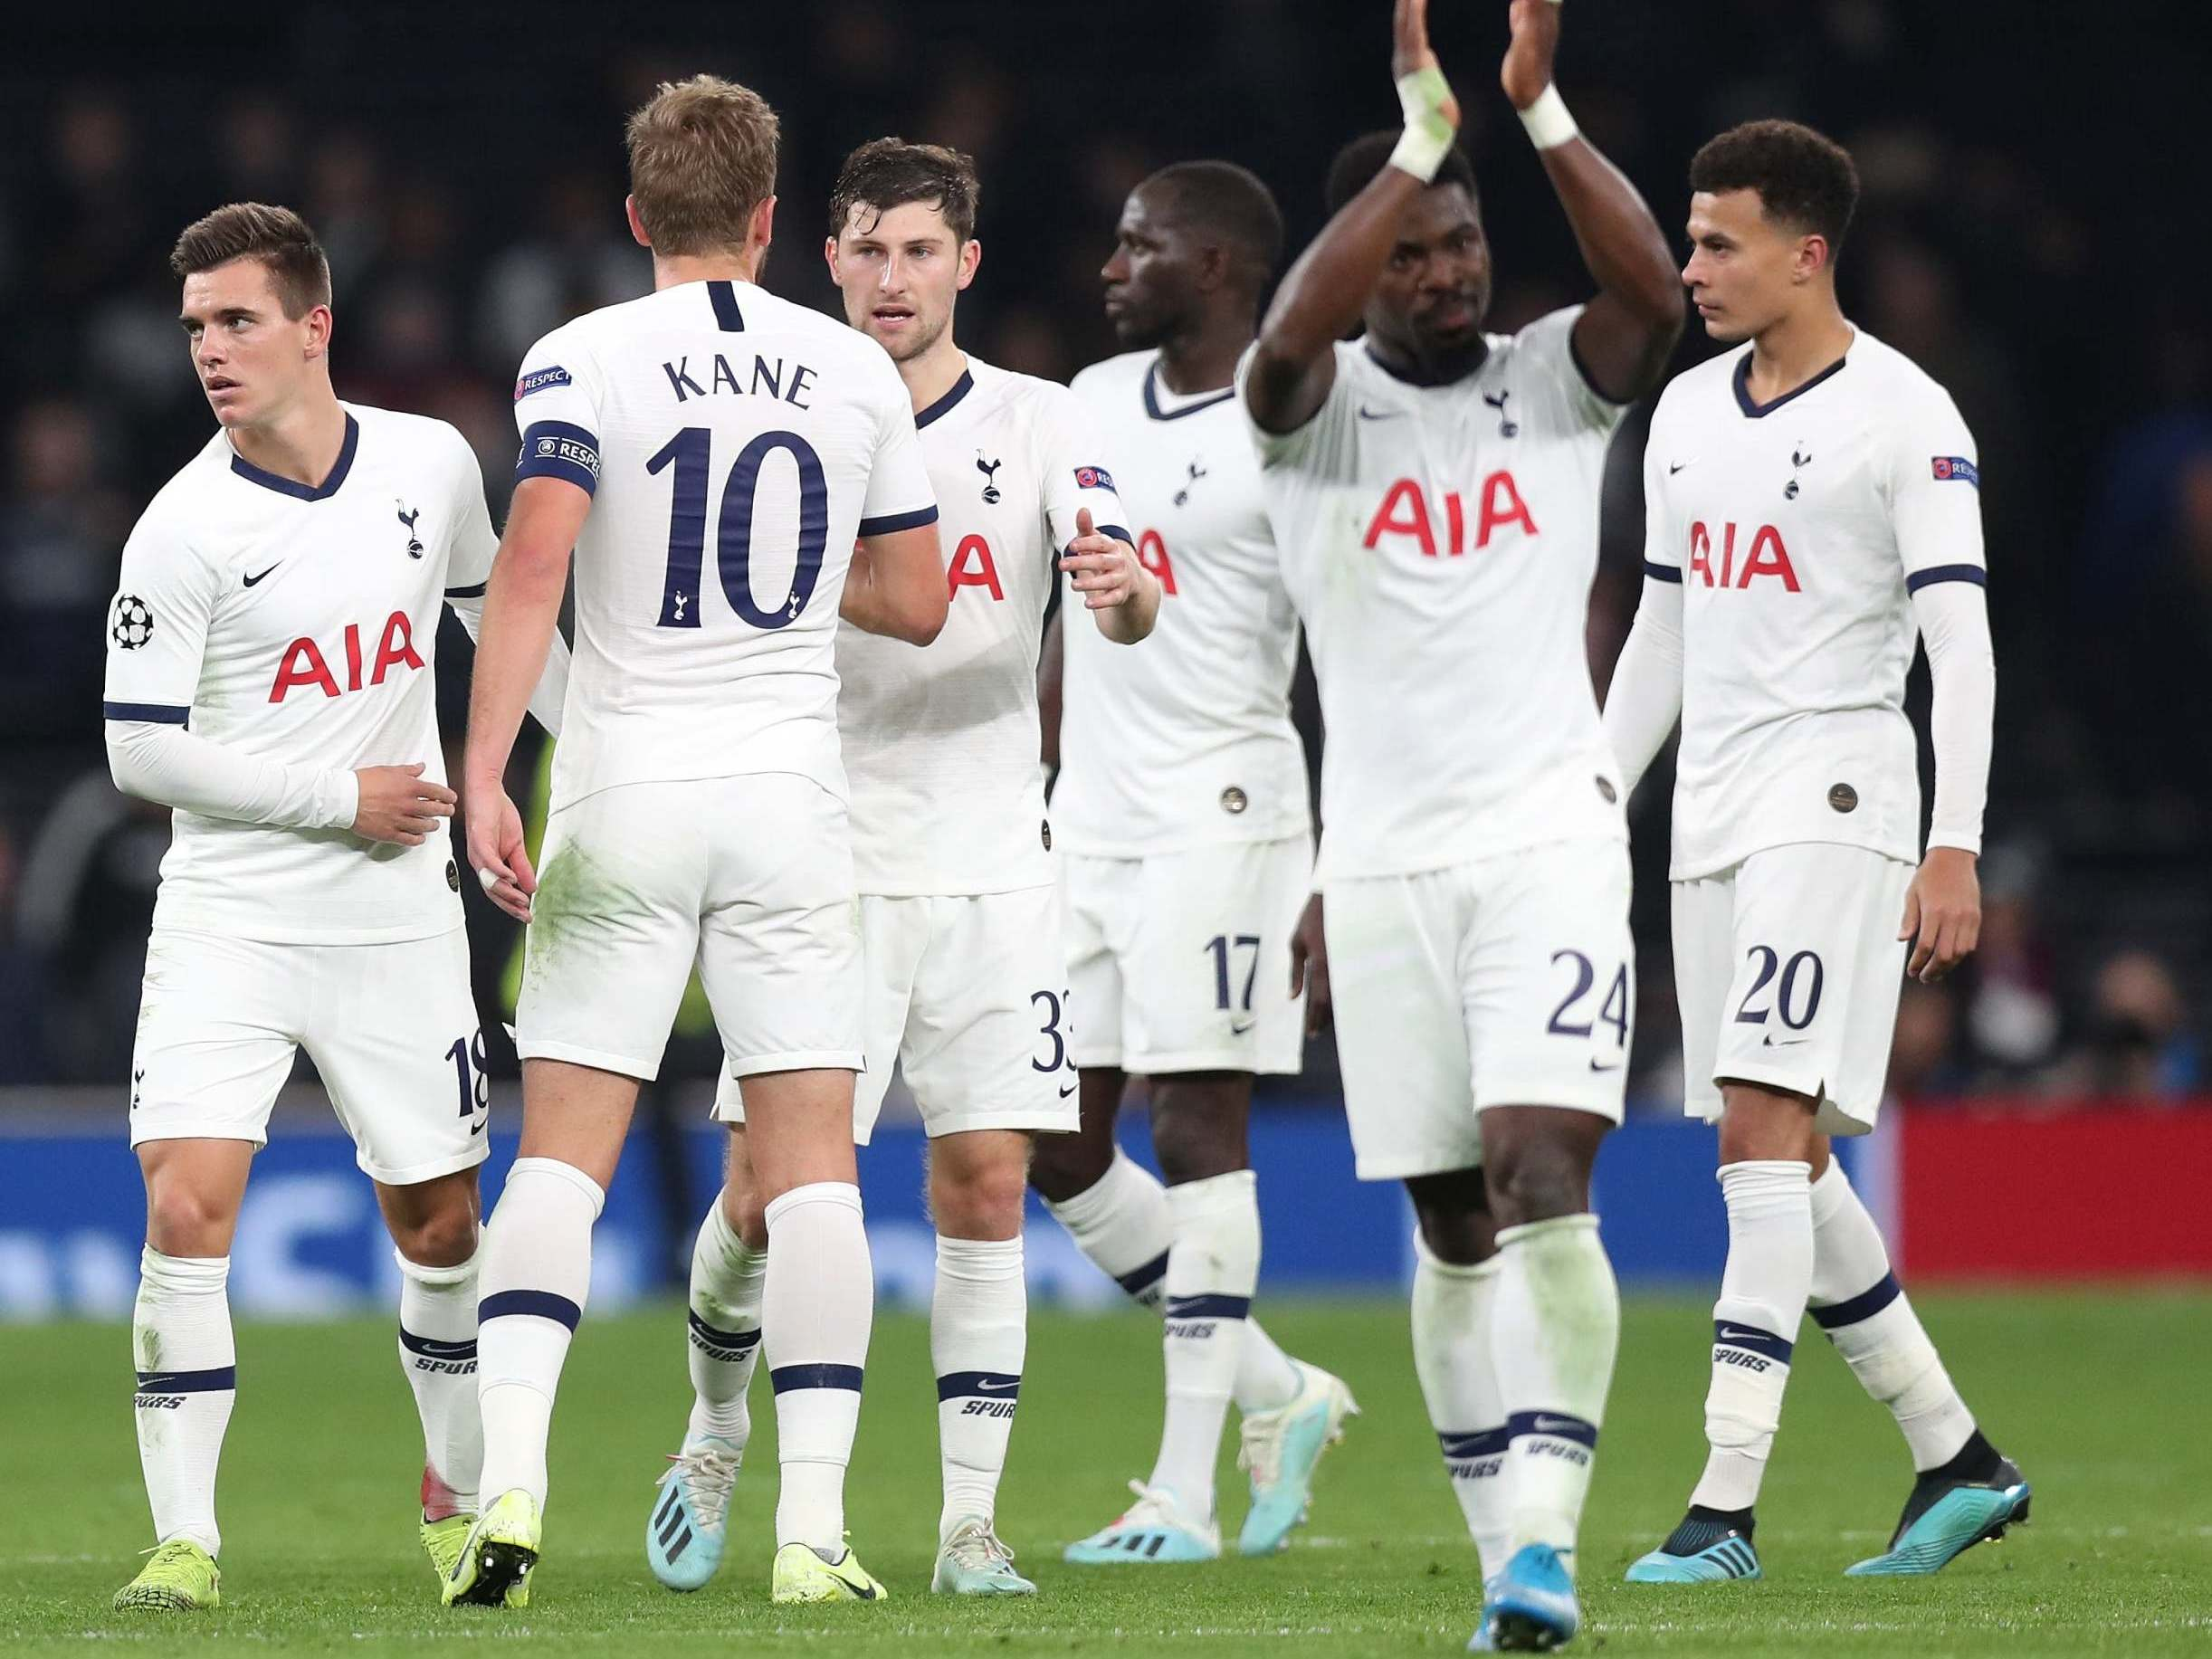 Tottenham: How victory against Red Star proved it's time for Mauricio Pochettino to cut loose Spurs' deadwood